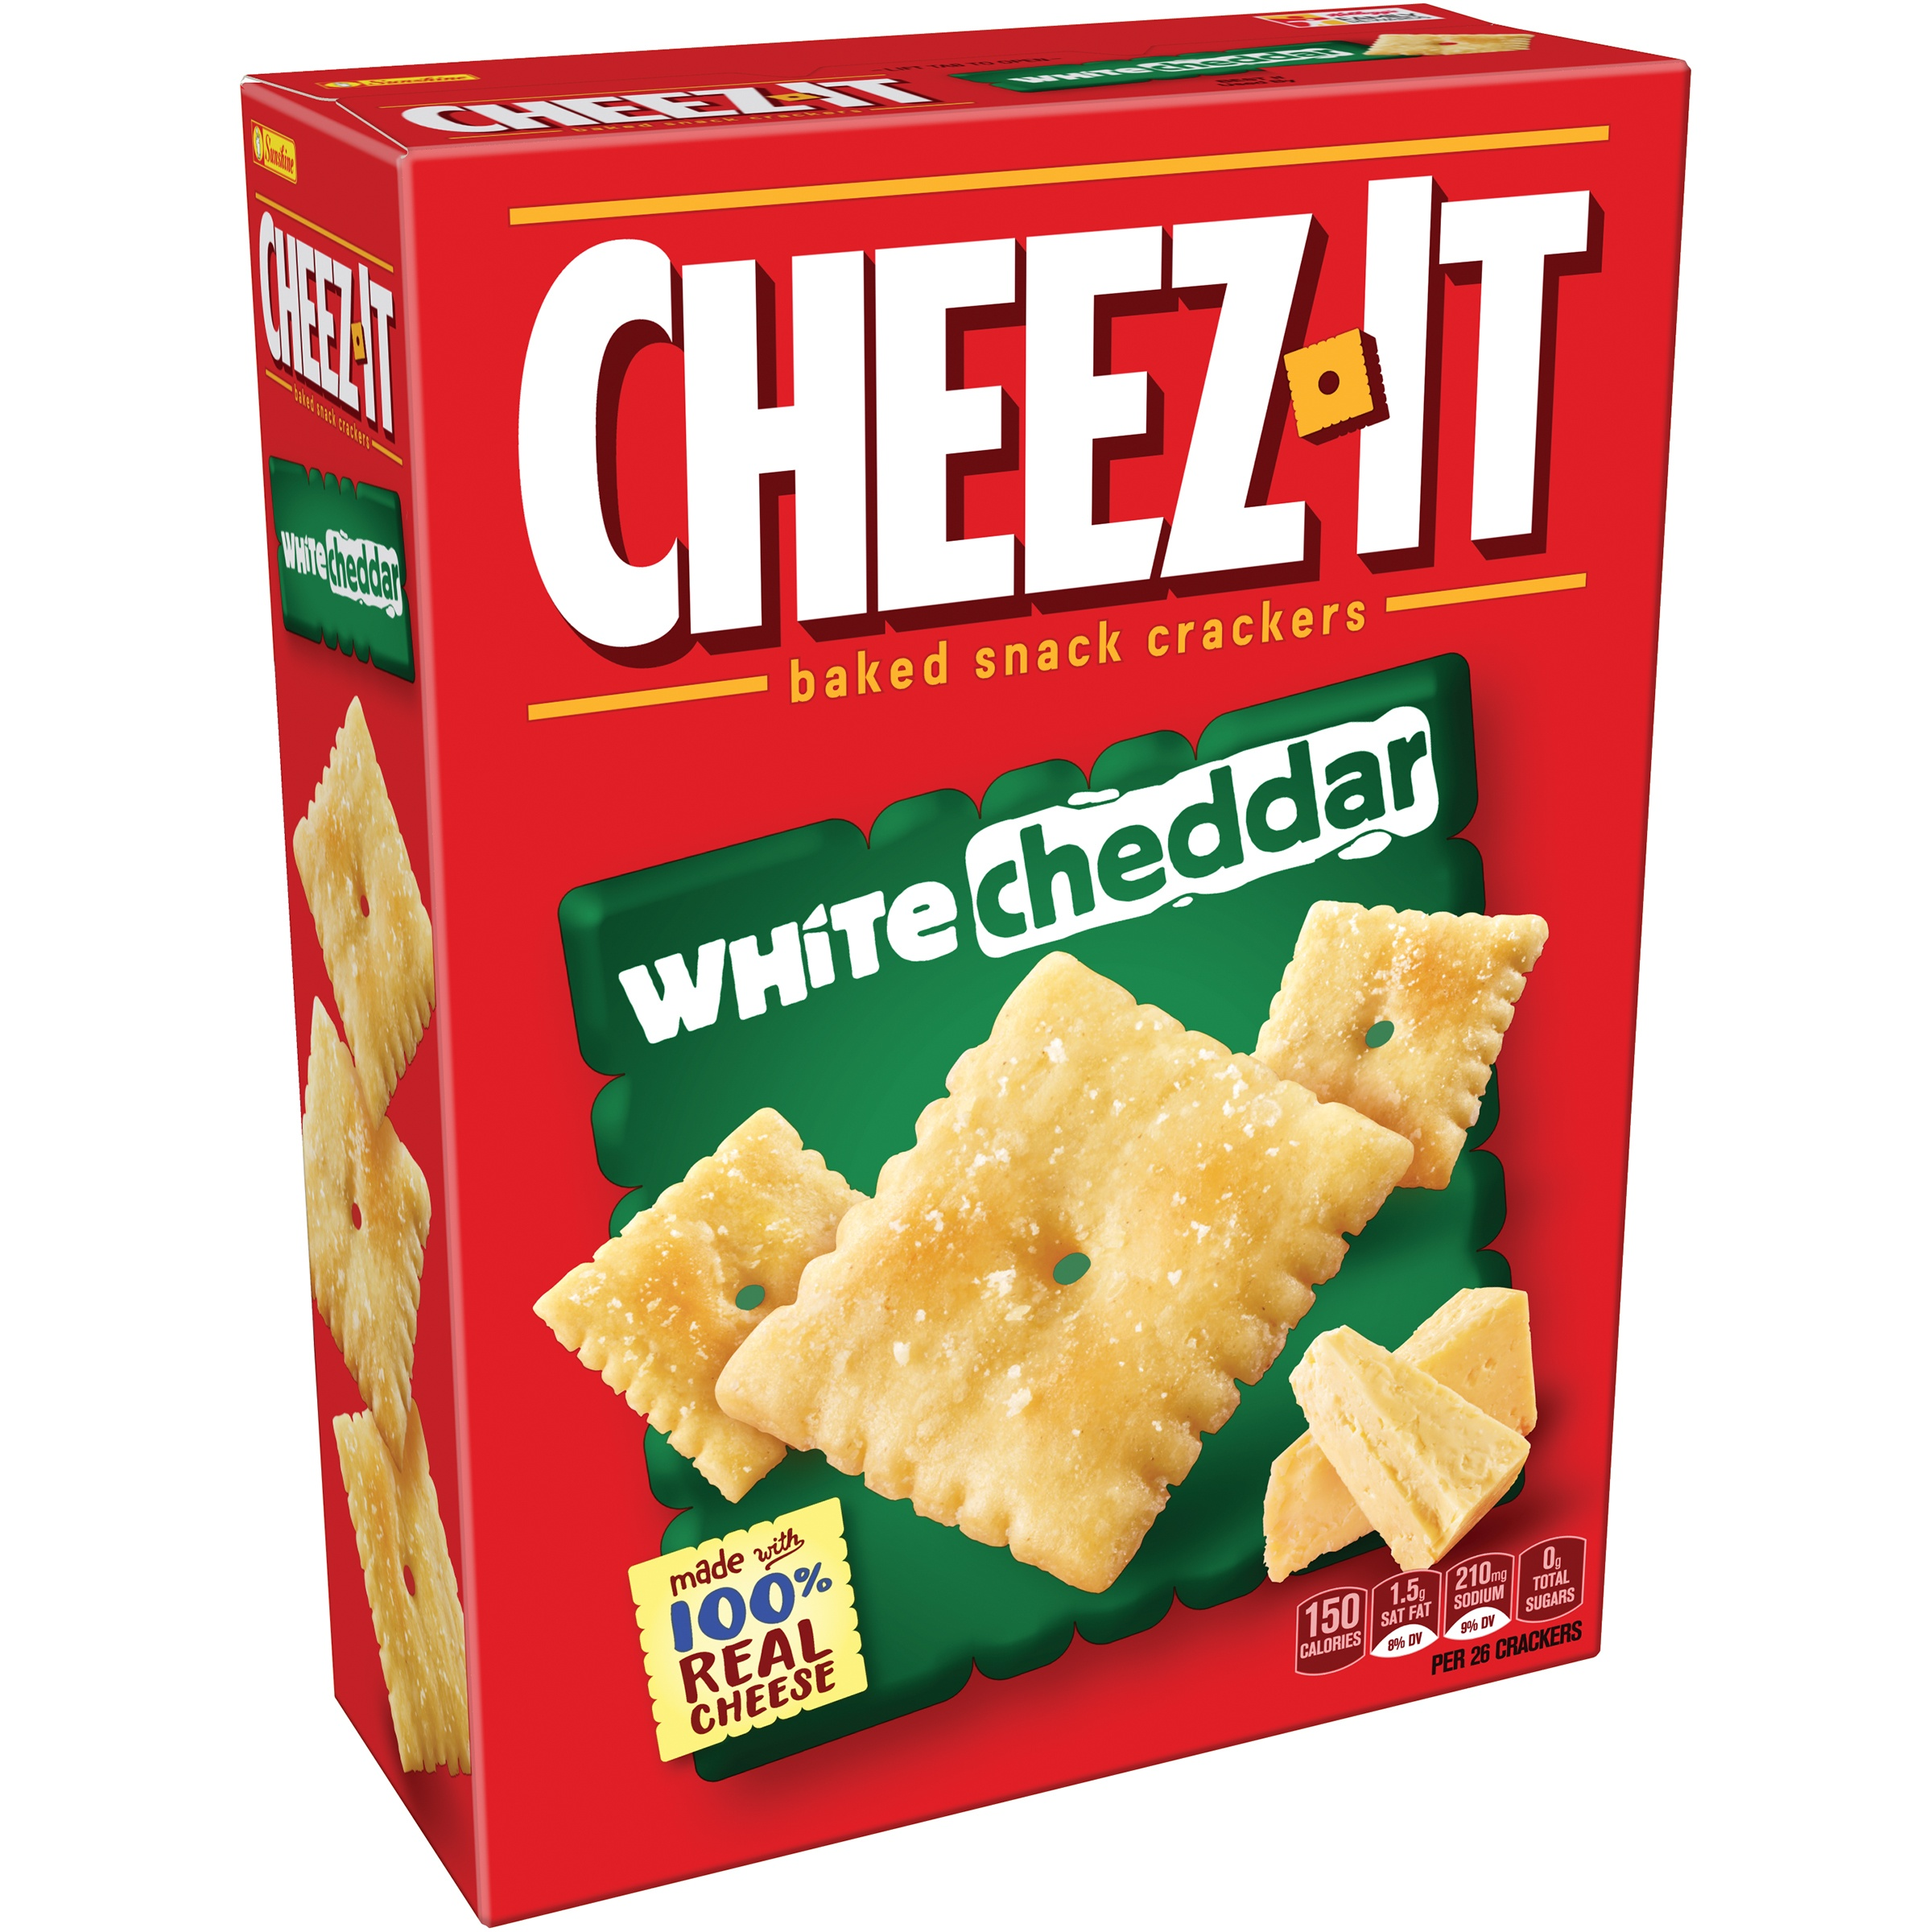 Cheez-It White Cheddar Baked Snack Crackers 12.4 oz. Box